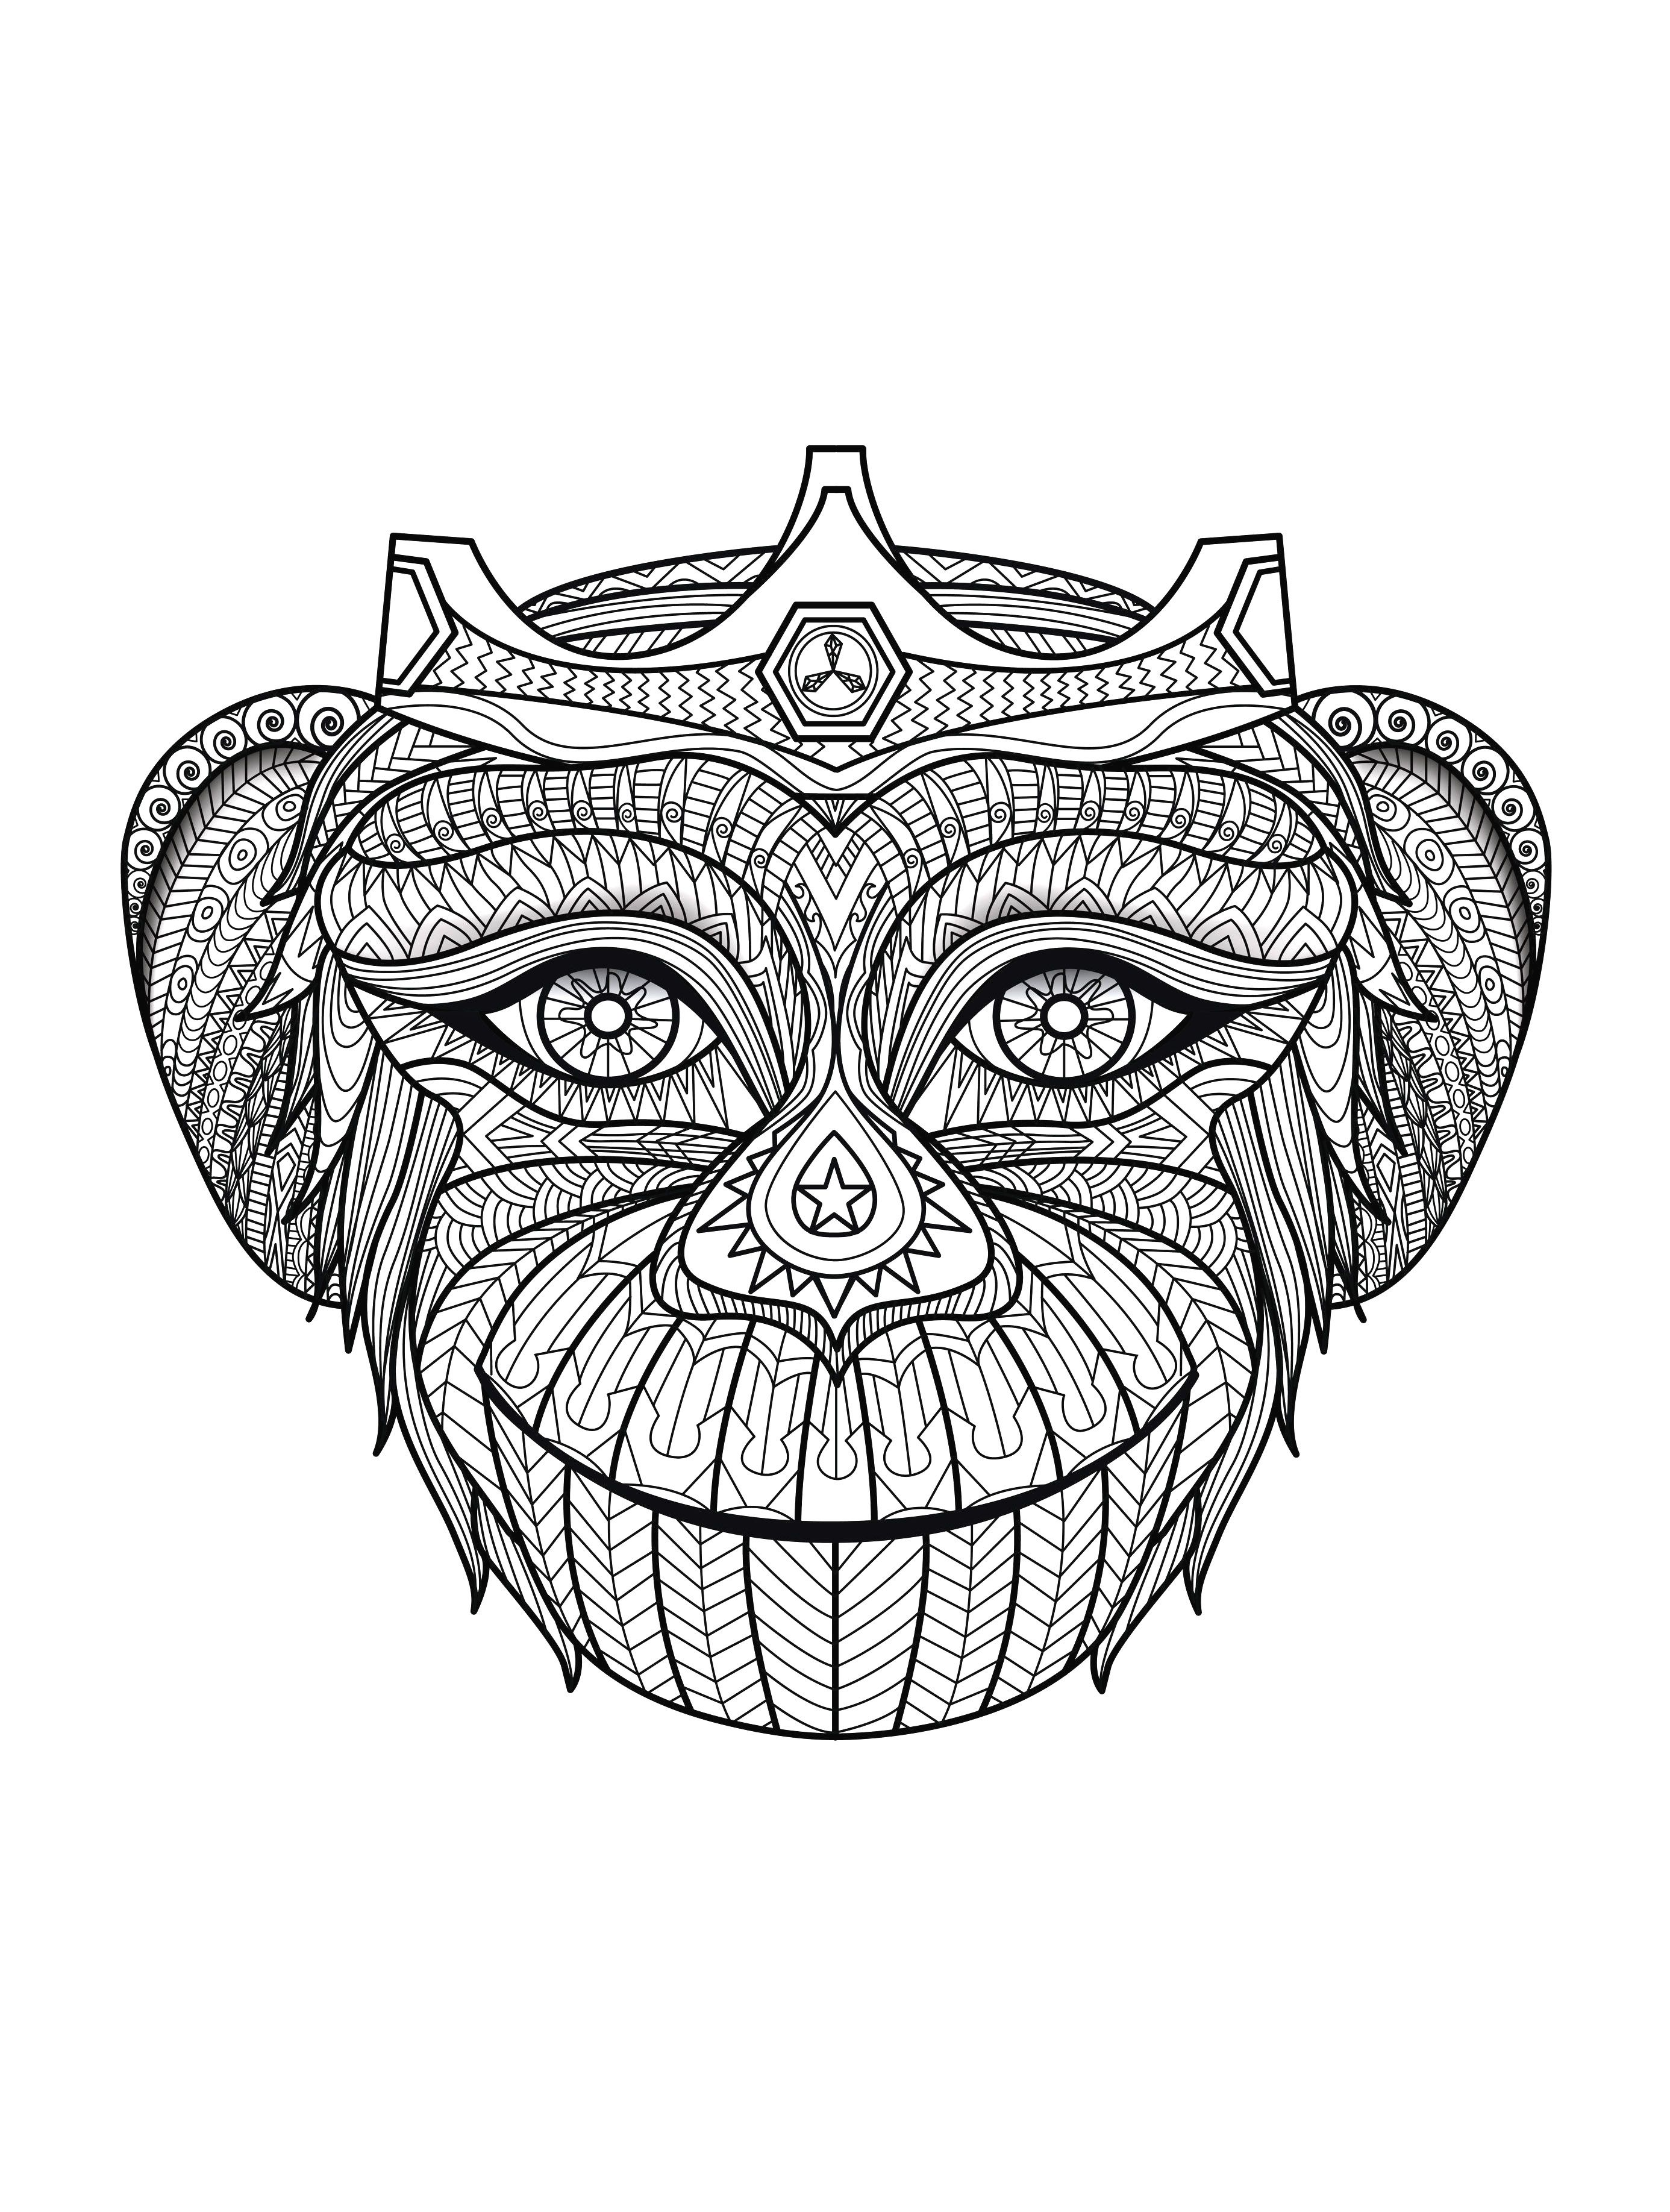 Coloring Pages For Adults Turtles : Adult coloring pages turtle az